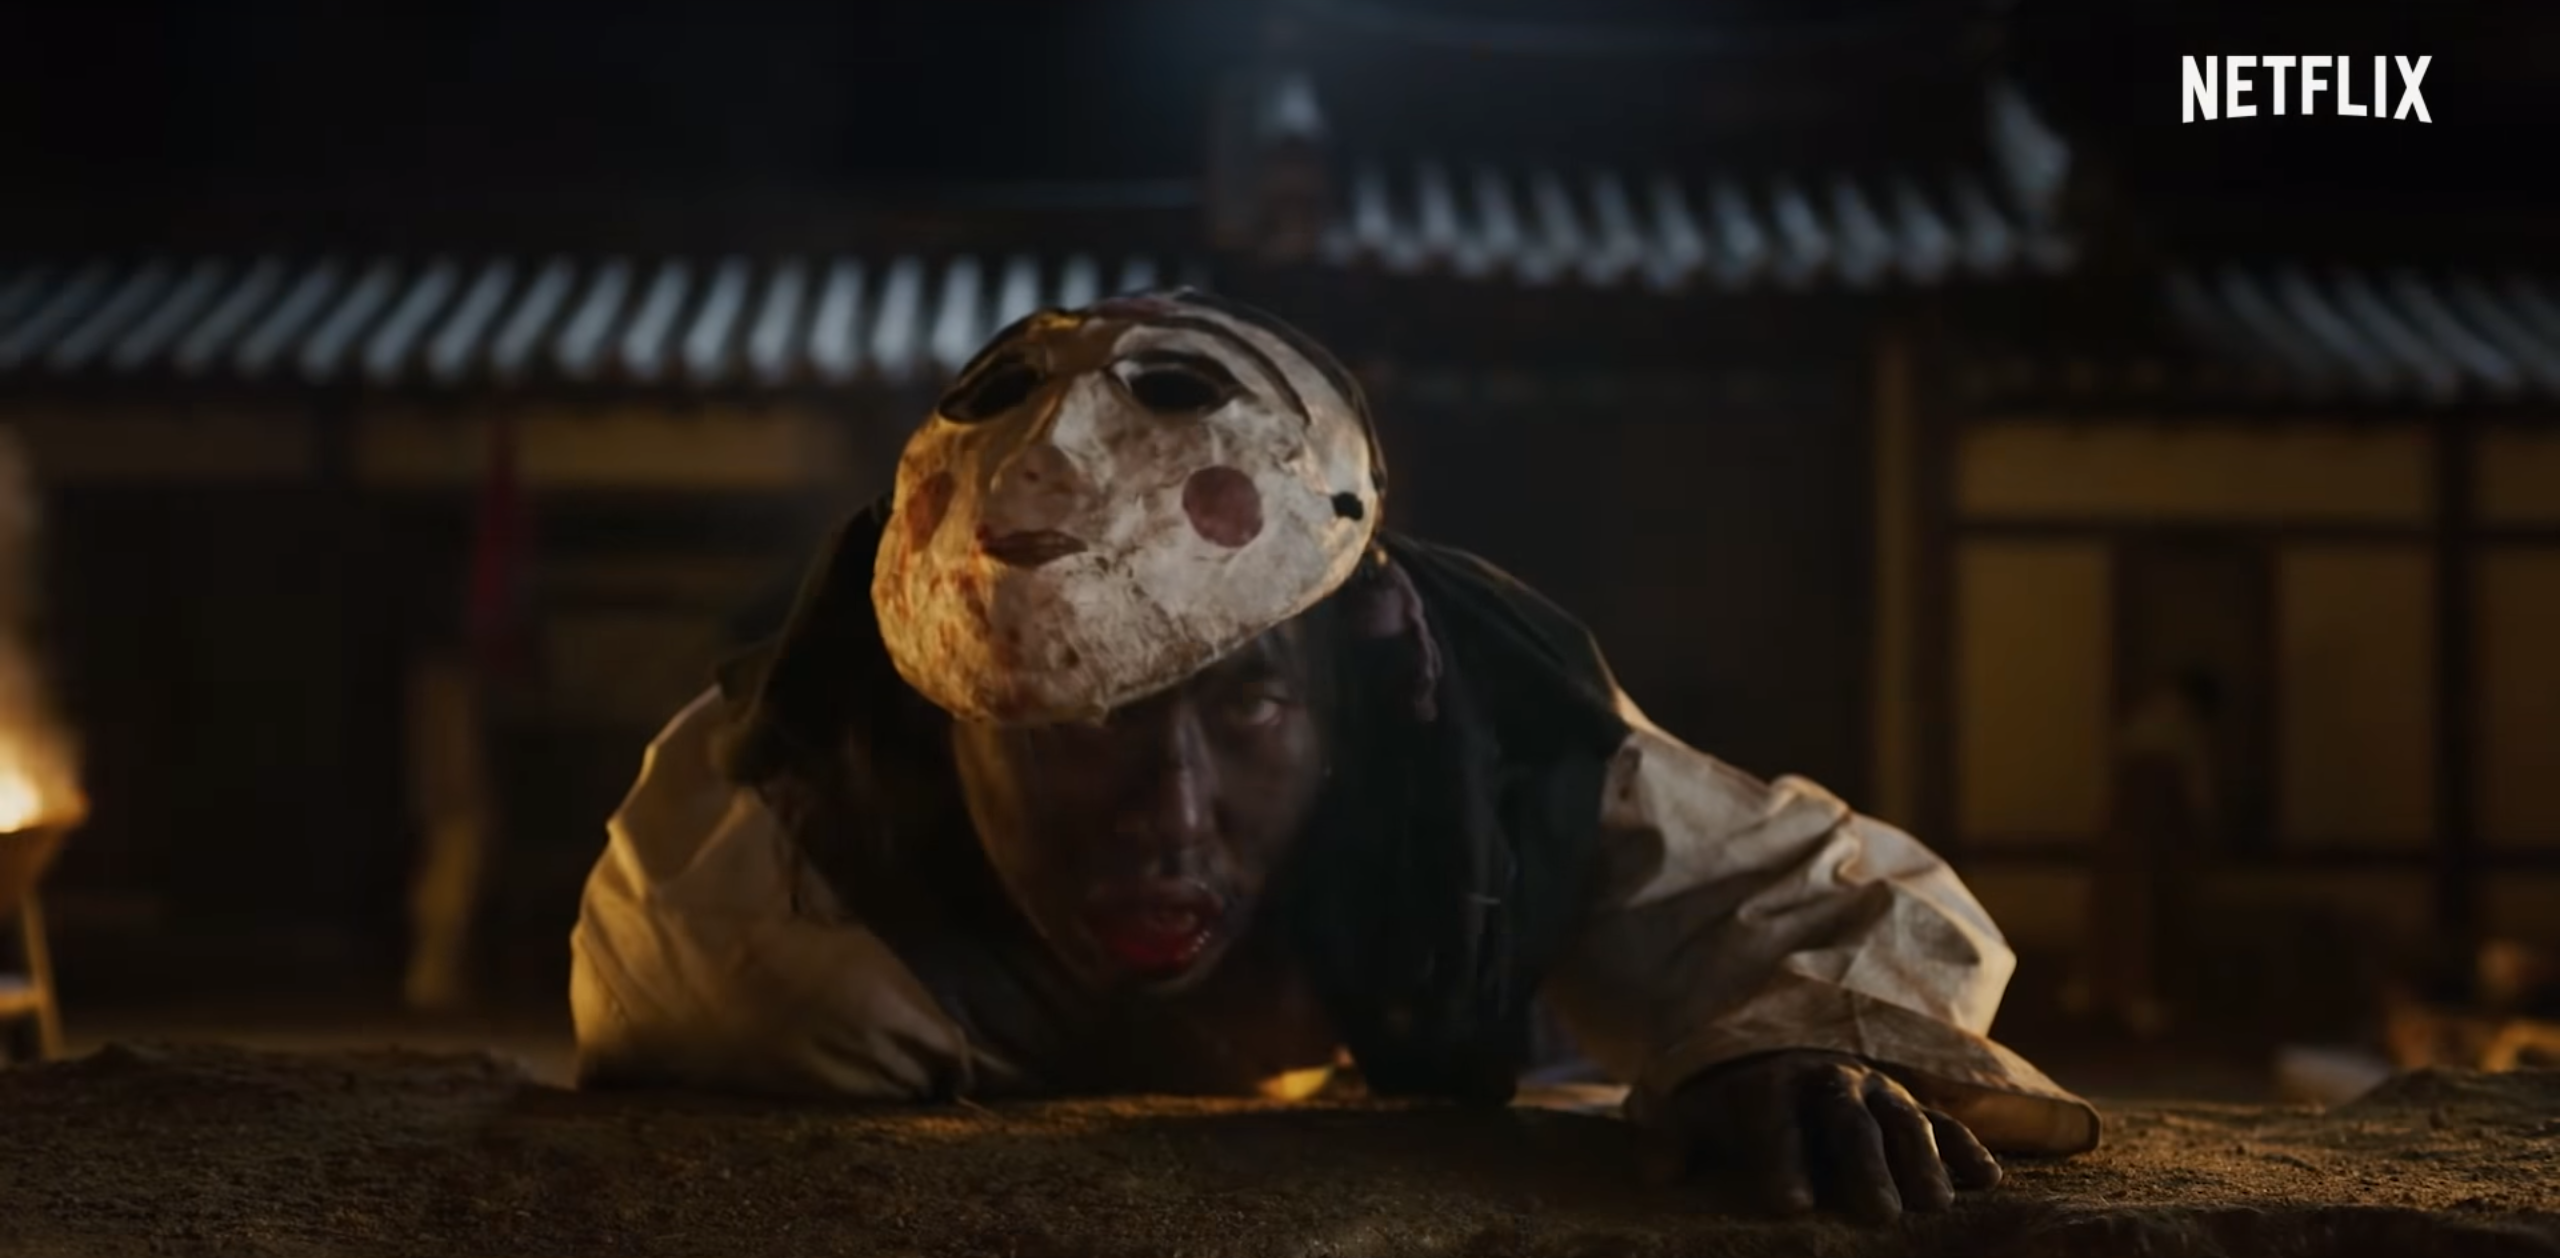 The First Trailer For Netflix's Korean Zombie Epic Kingdom Teases Ancient Horrors